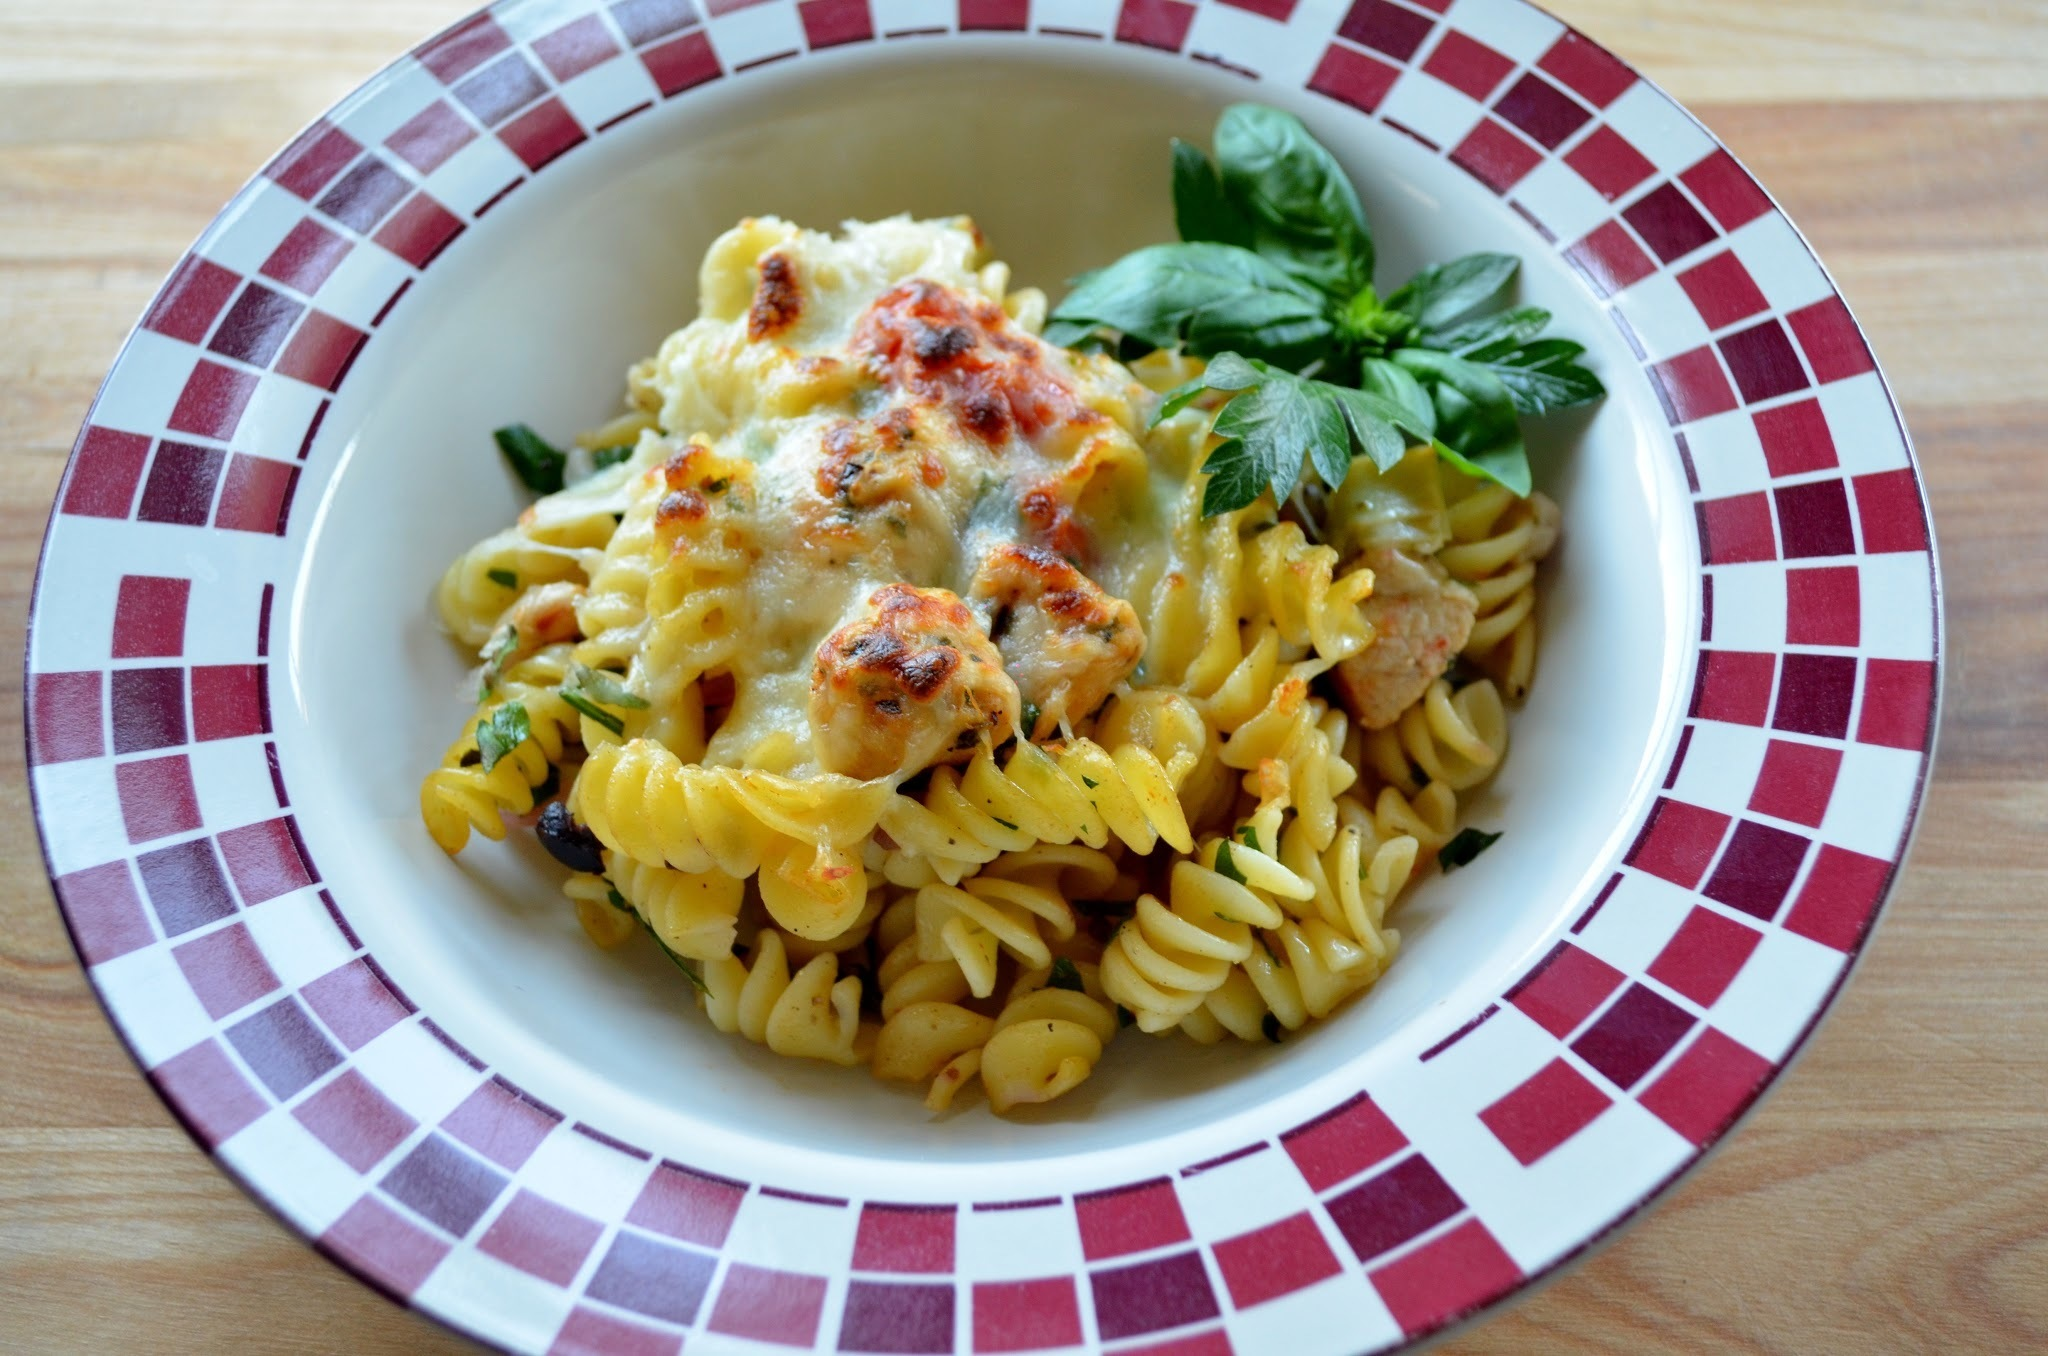 Mediterranean Chicken and Pasta Bake